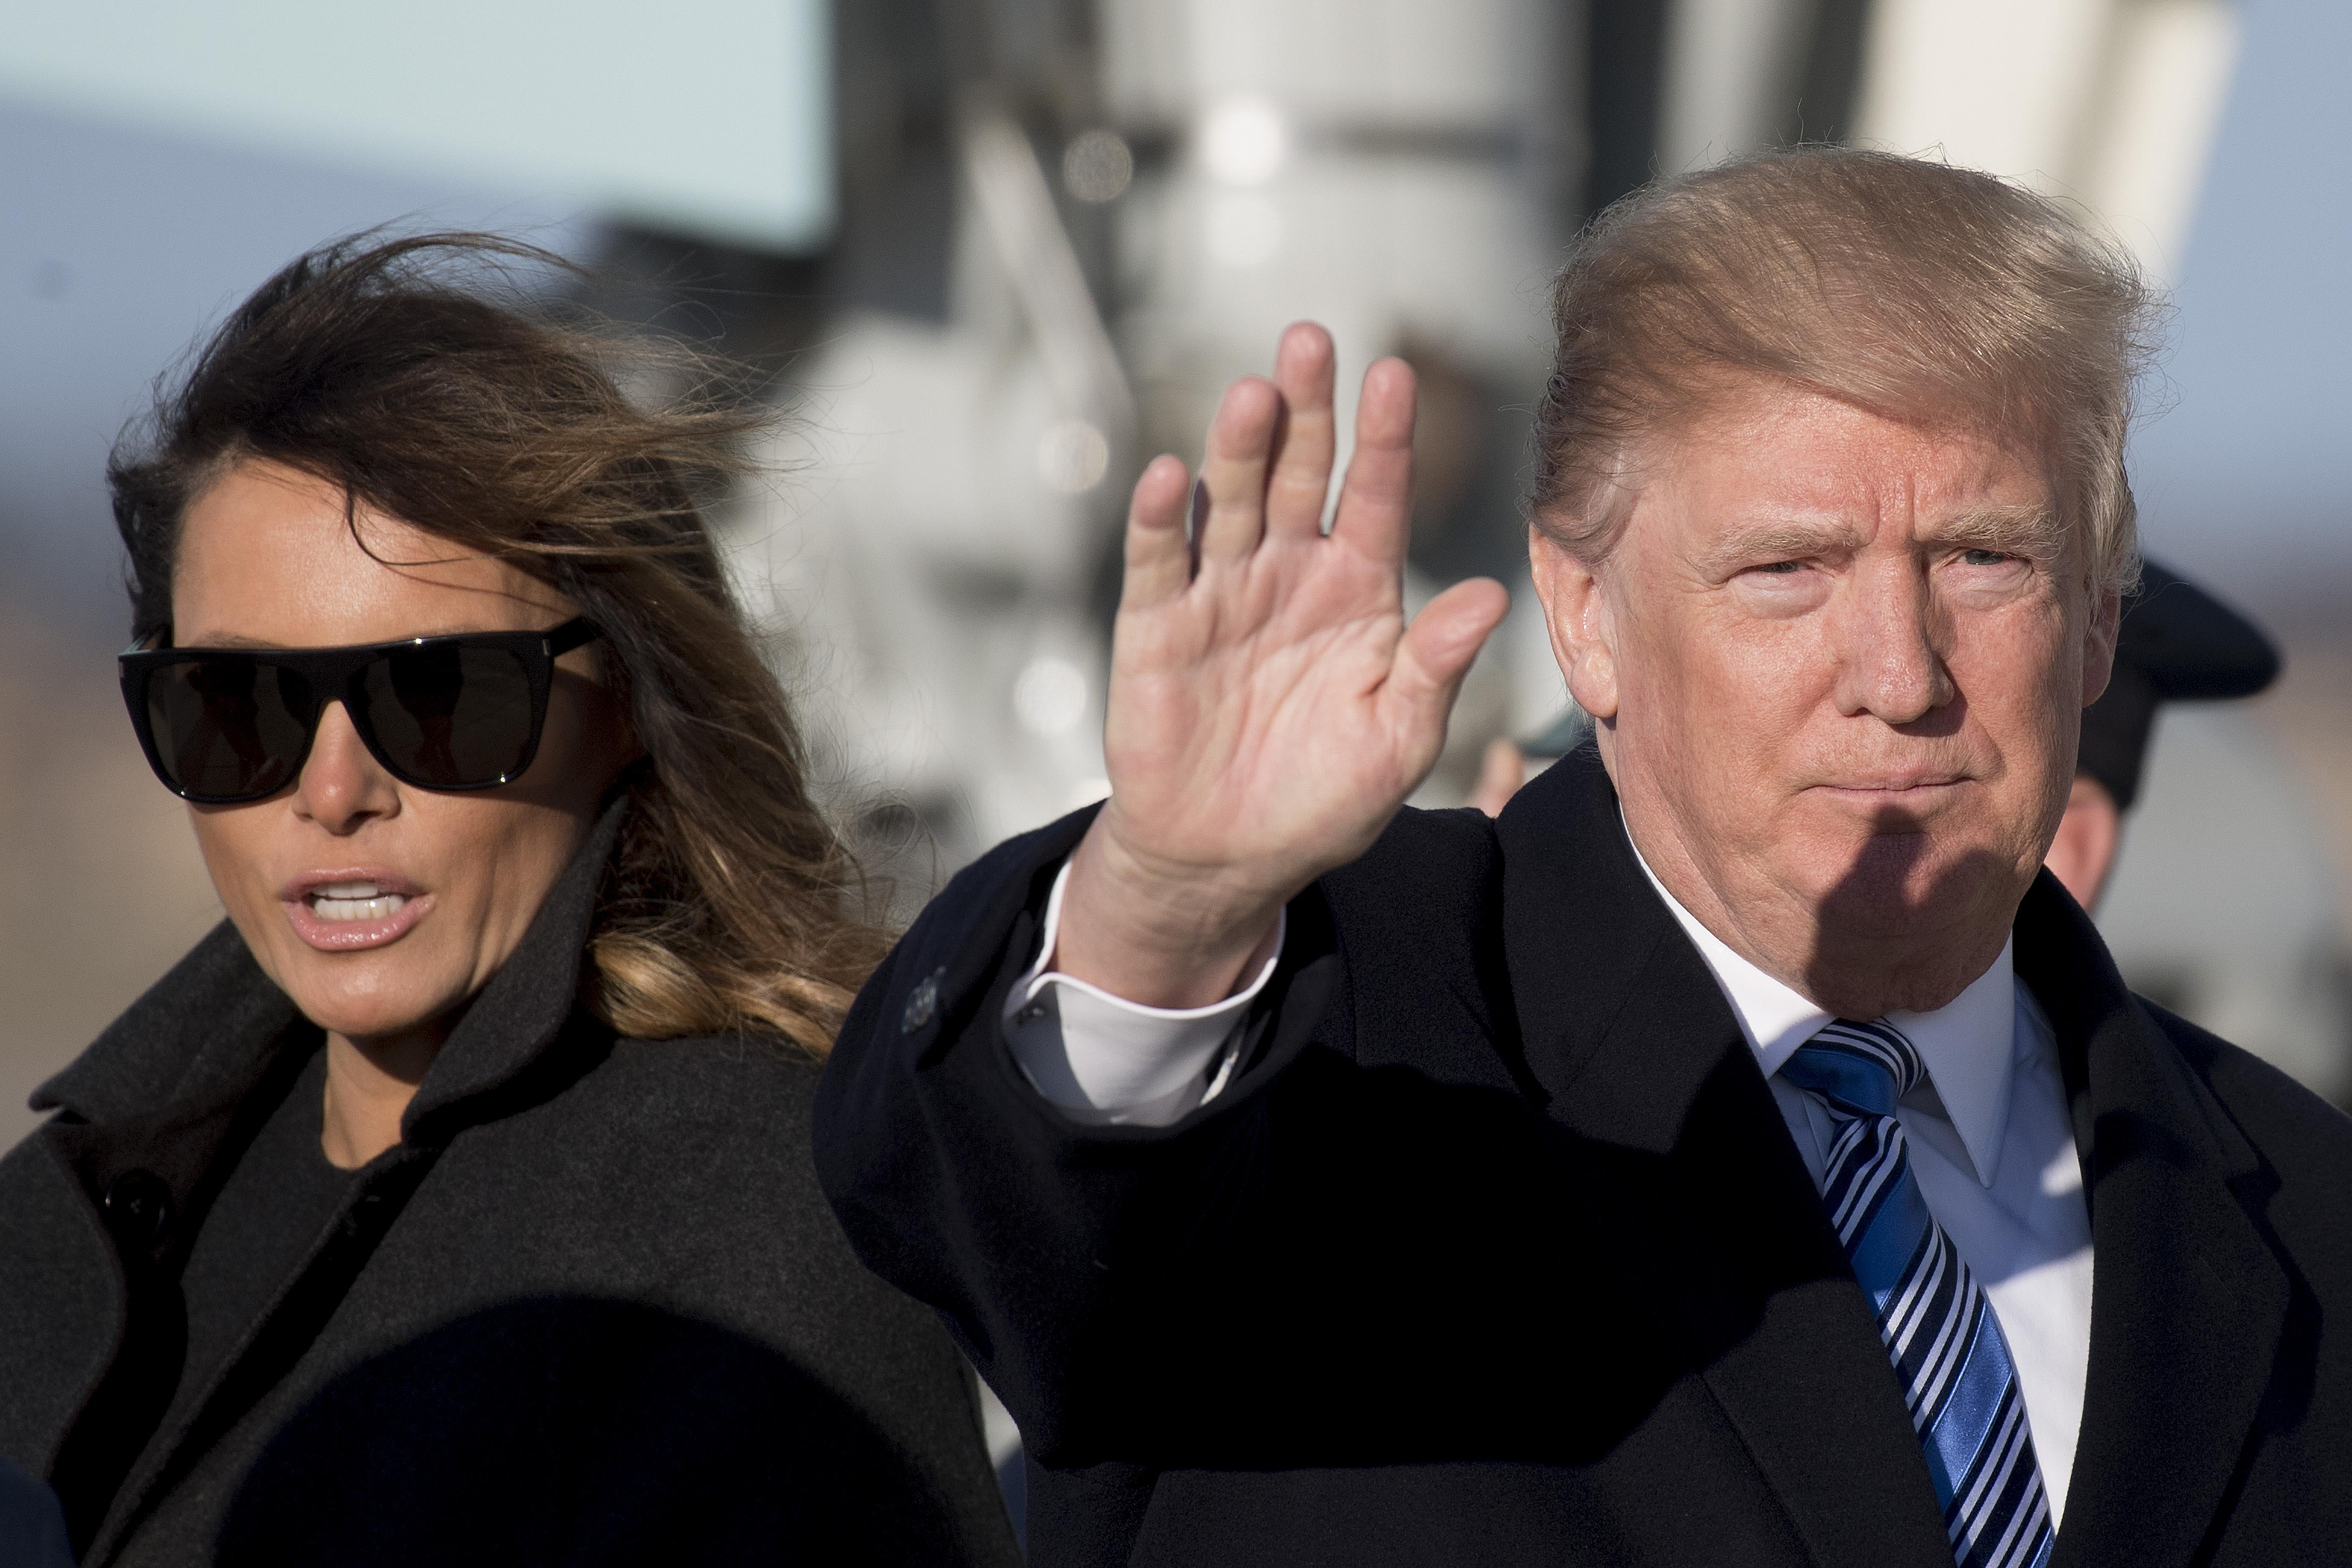 President Trump and First Lady Melania Trump walk off Air Force One at Andrews Air Force Base, Maryland, on Sunday.